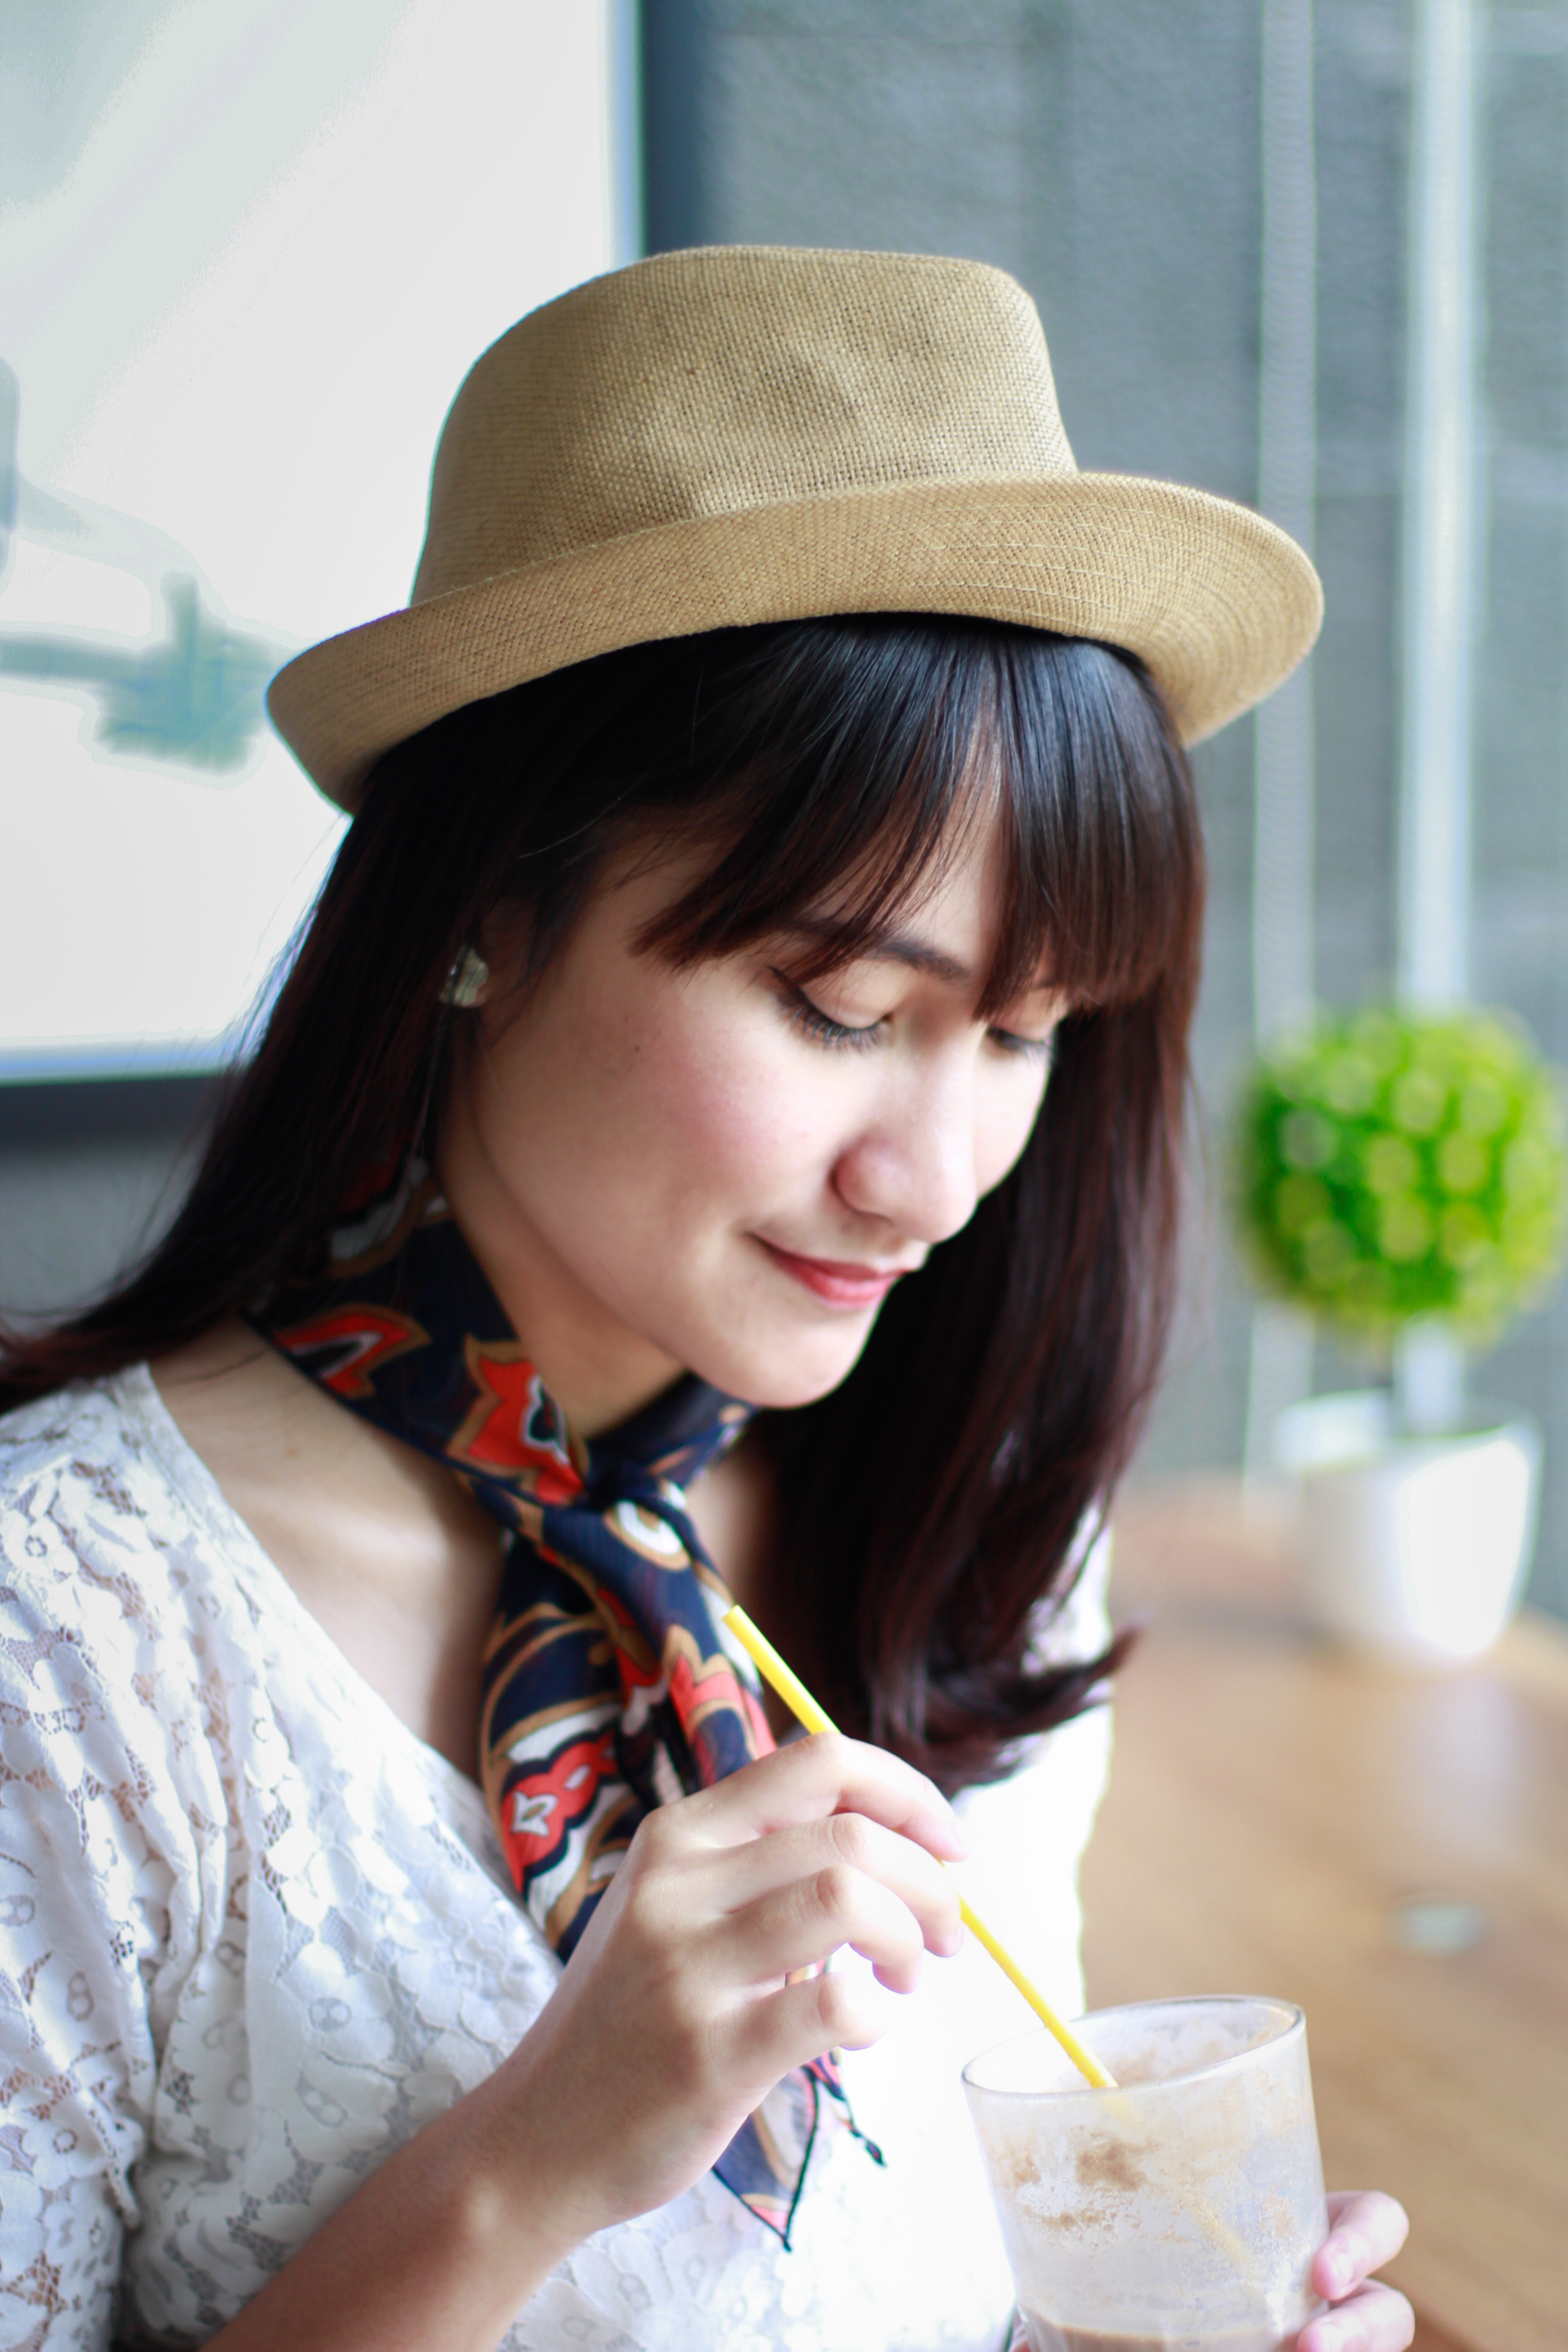 Close-Up Photography of a Woman Wearing Hat · Free Stock Photo